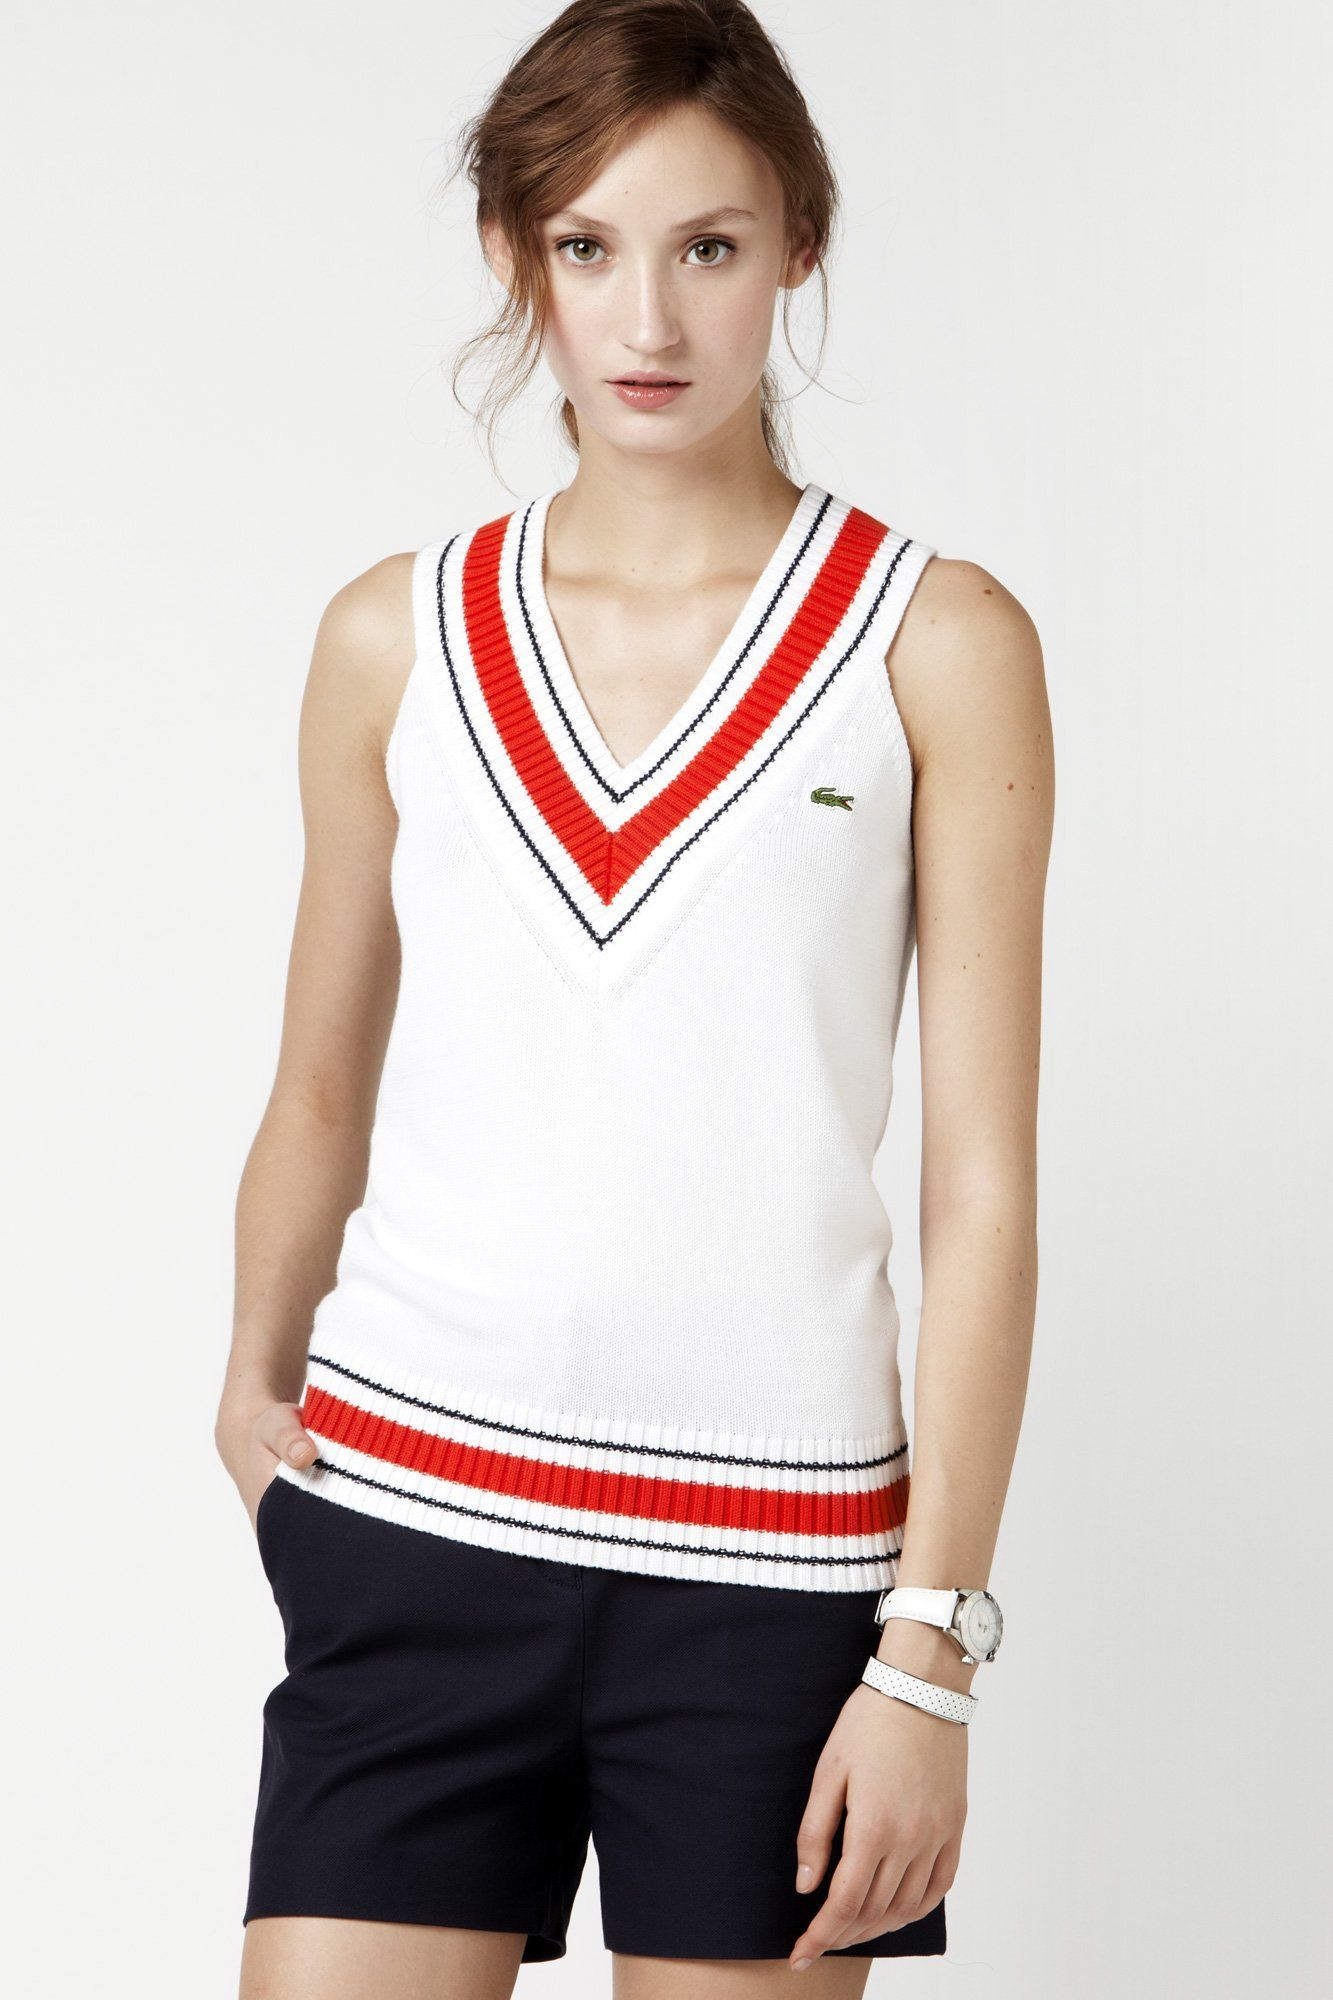 Lacoste Sleeveless Cotton V-neck Tipped Sweater Vest : Sweaters ...